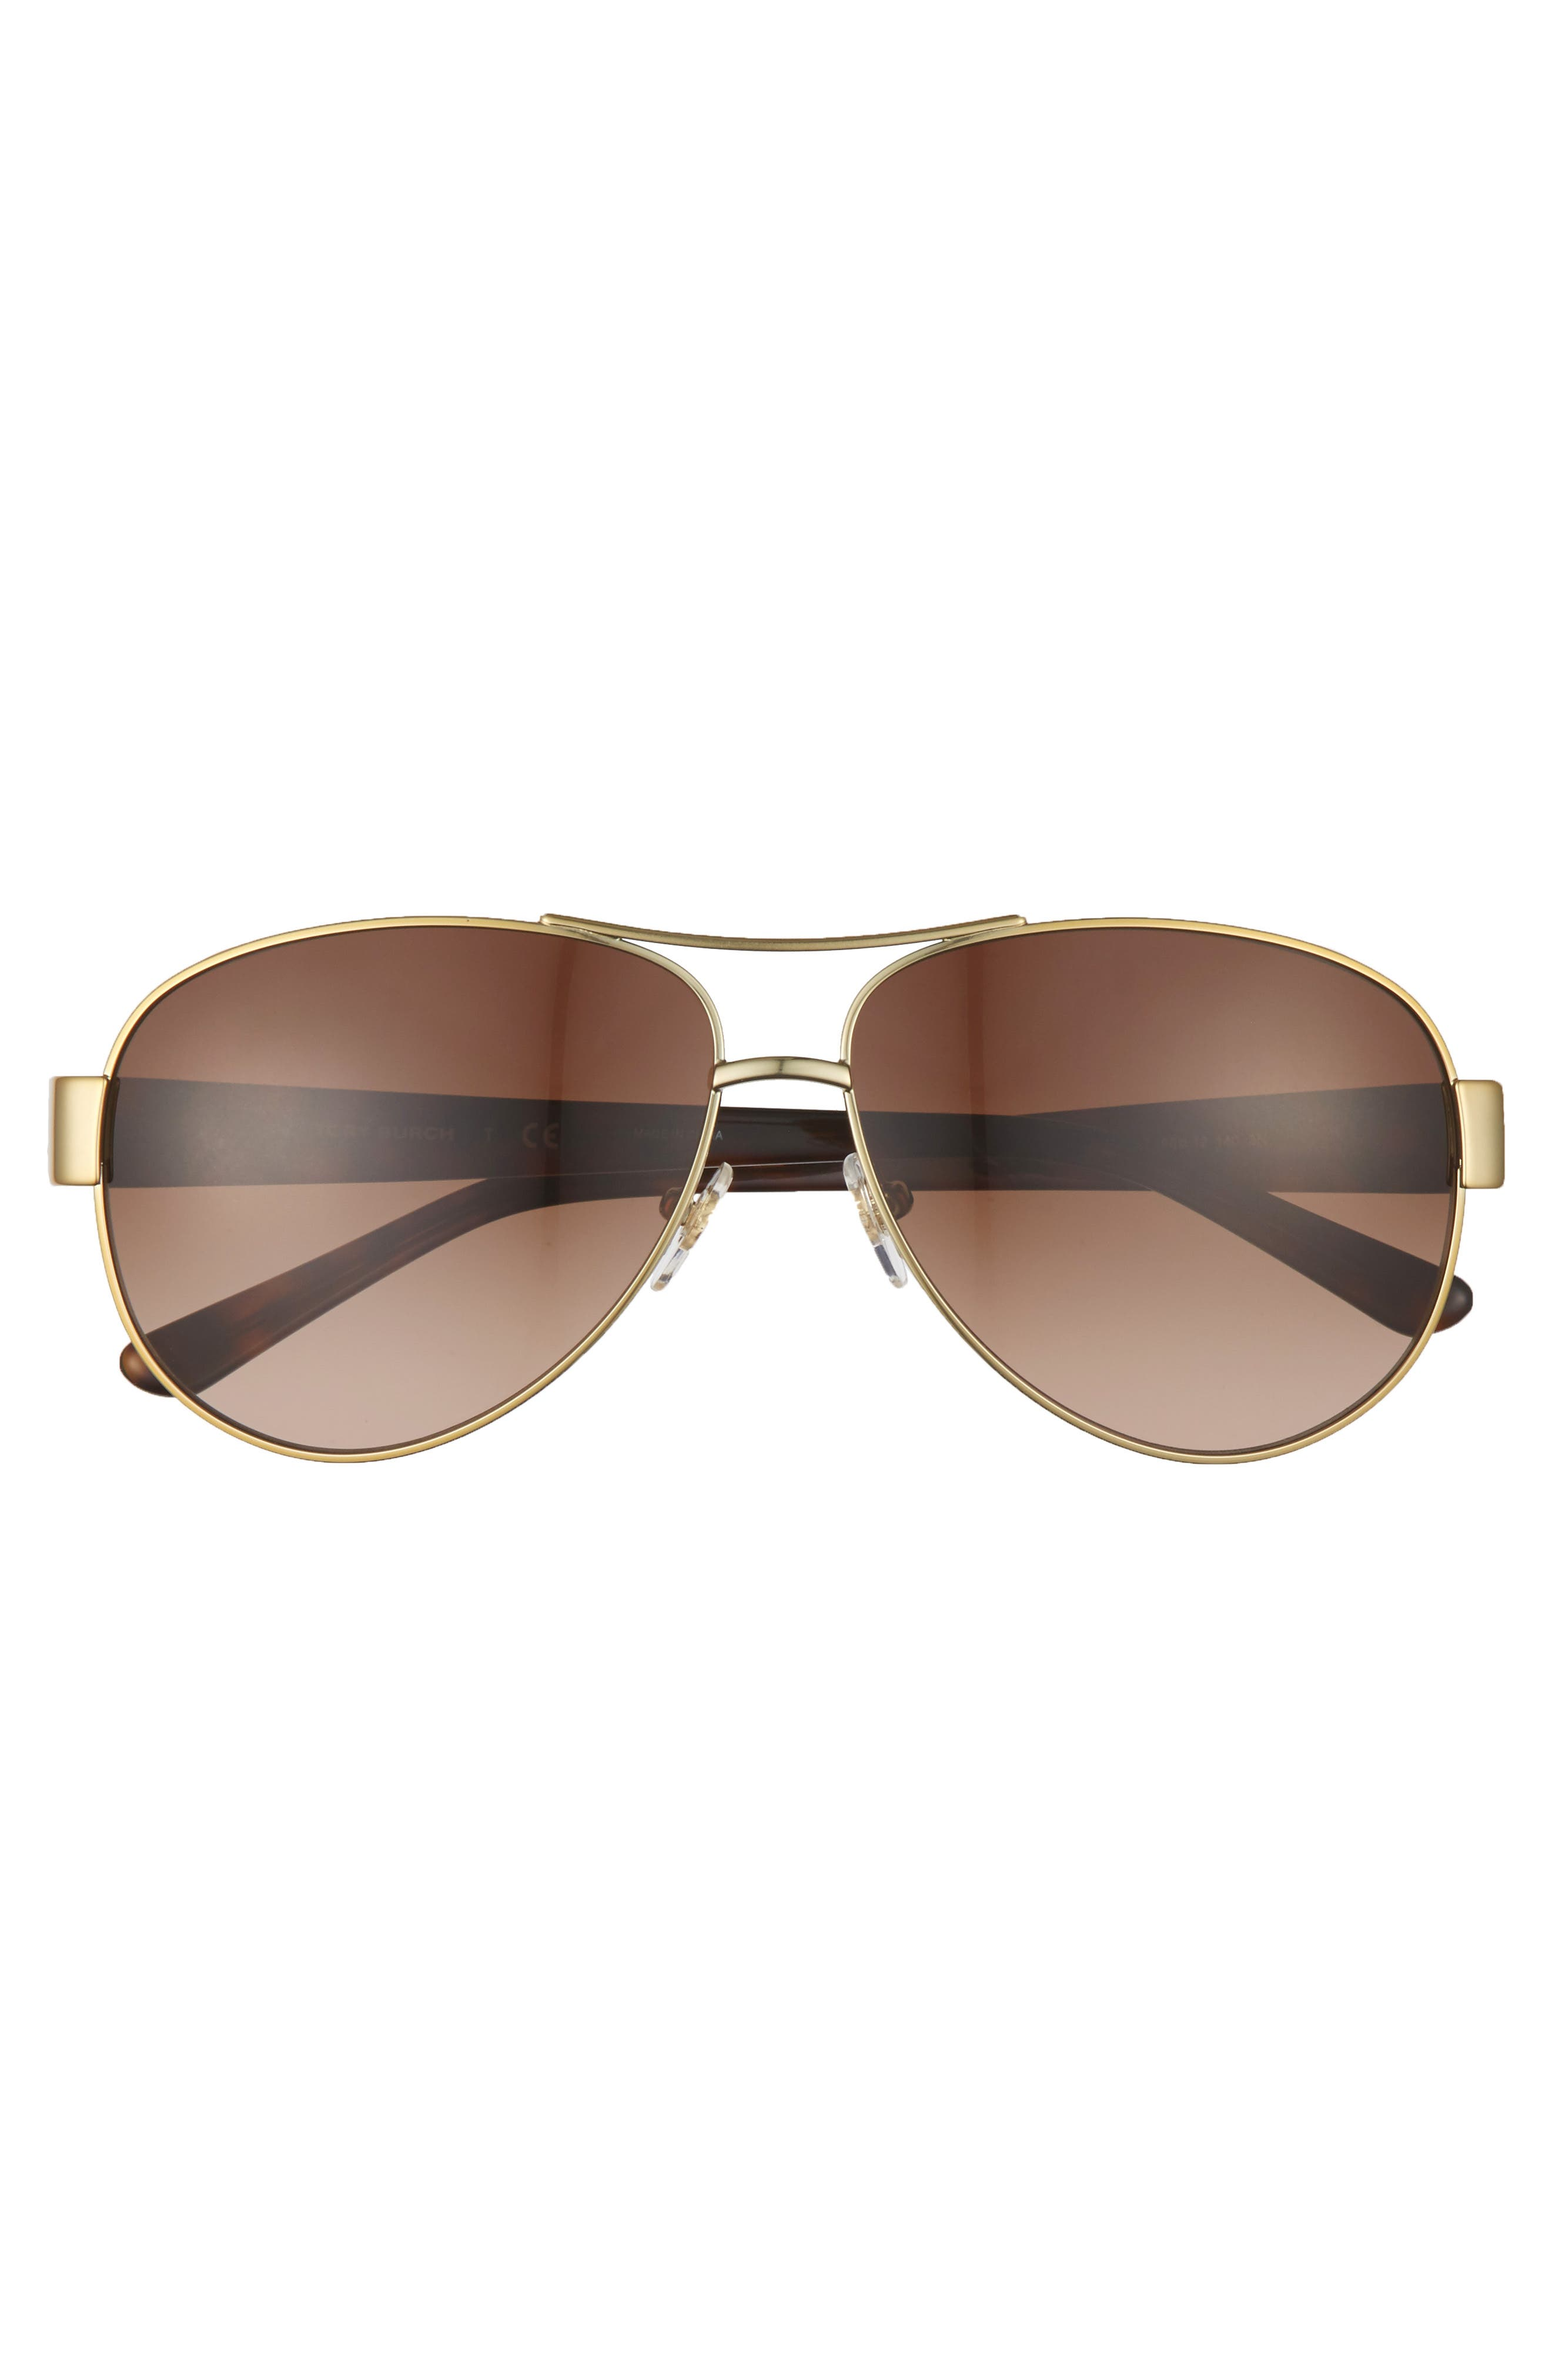 60mm Aviator Sunglasses,                             Alternate thumbnail 3, color,                             GOLD/ BROWN